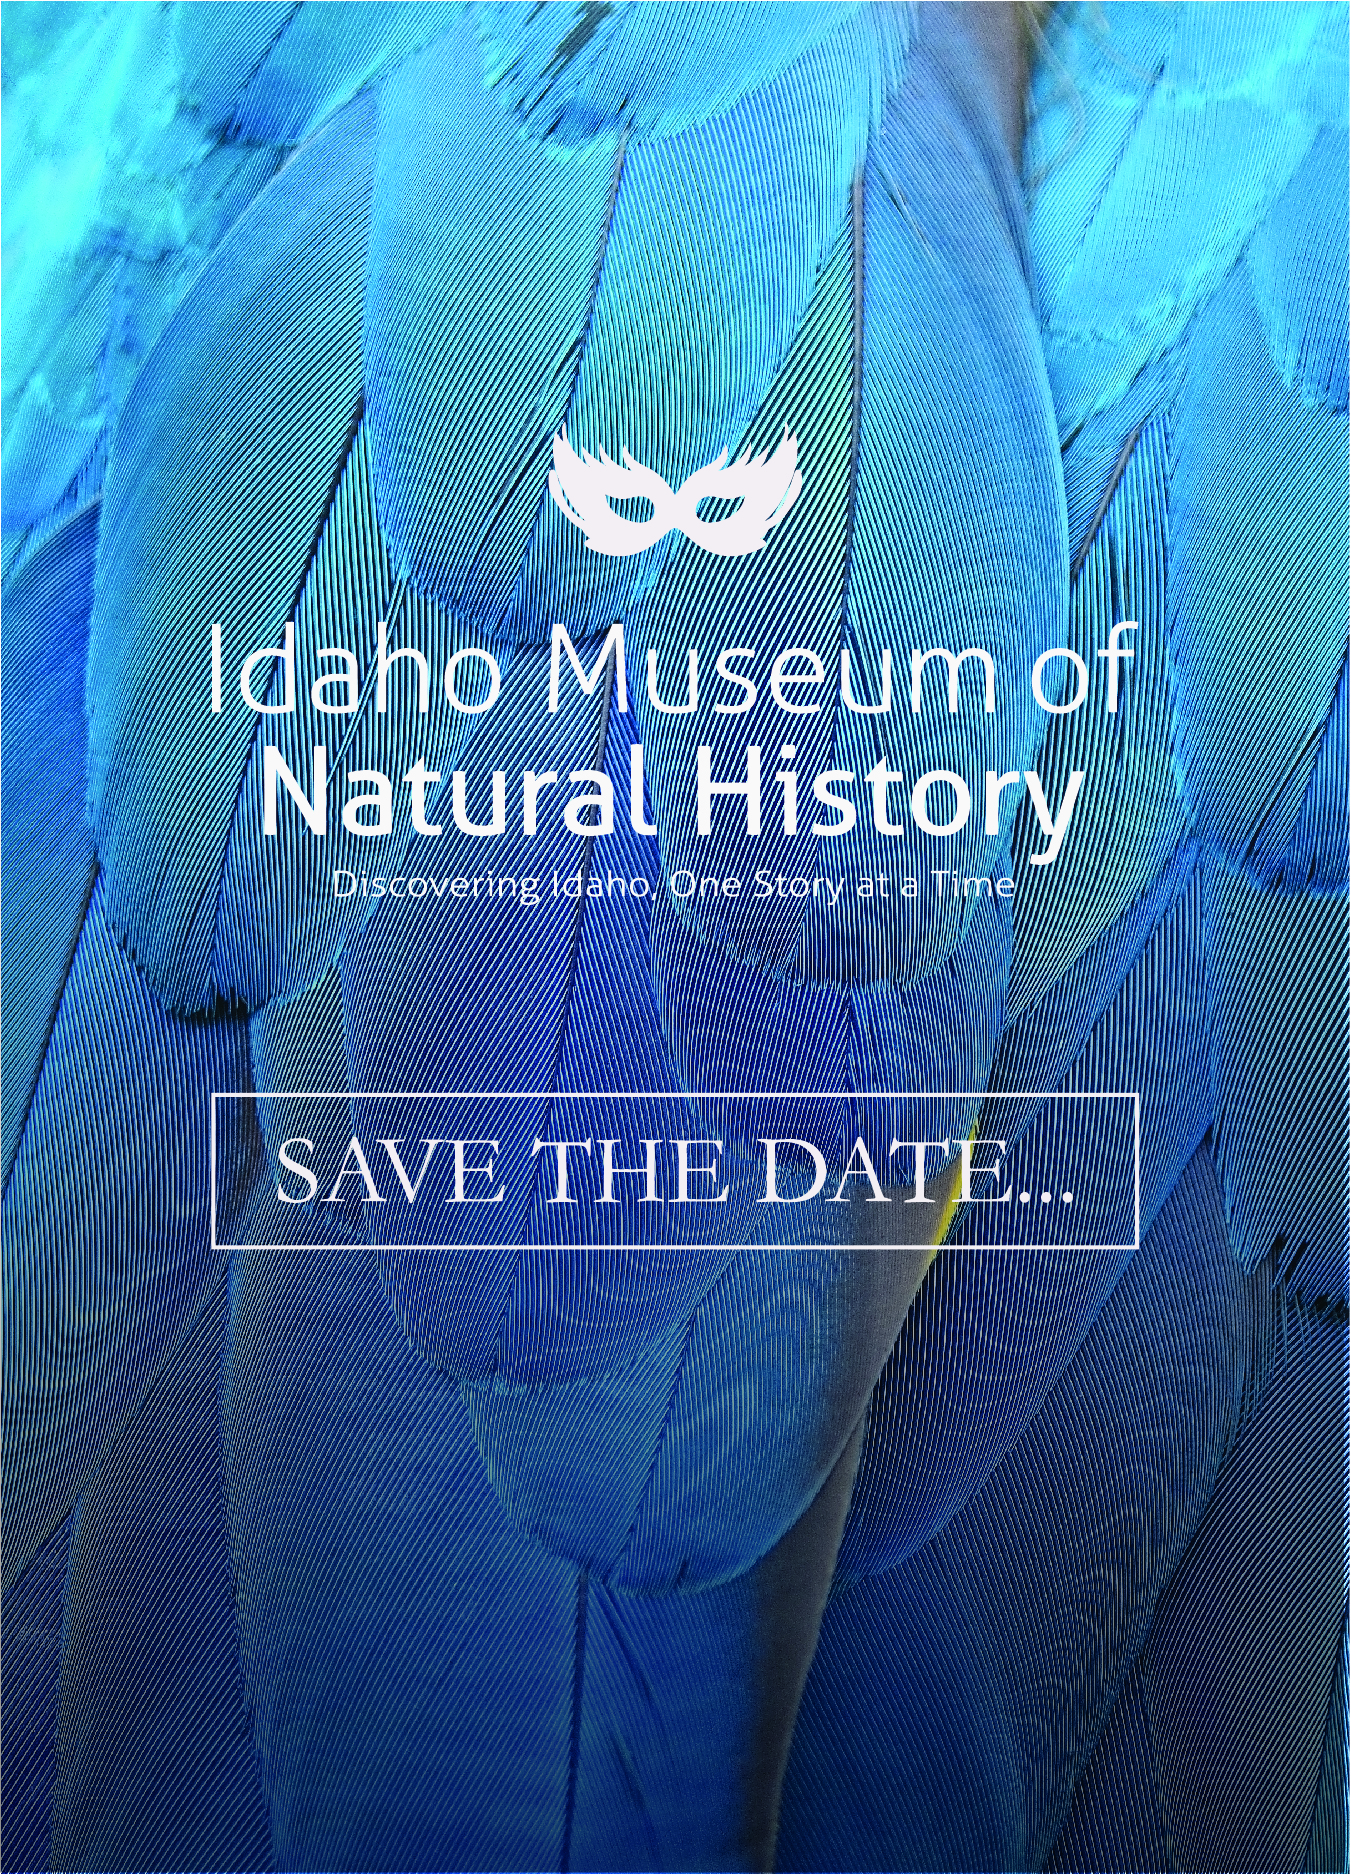 Idaho Museum of Natural History, Discovery Idaho One Story at a time, Save the Date